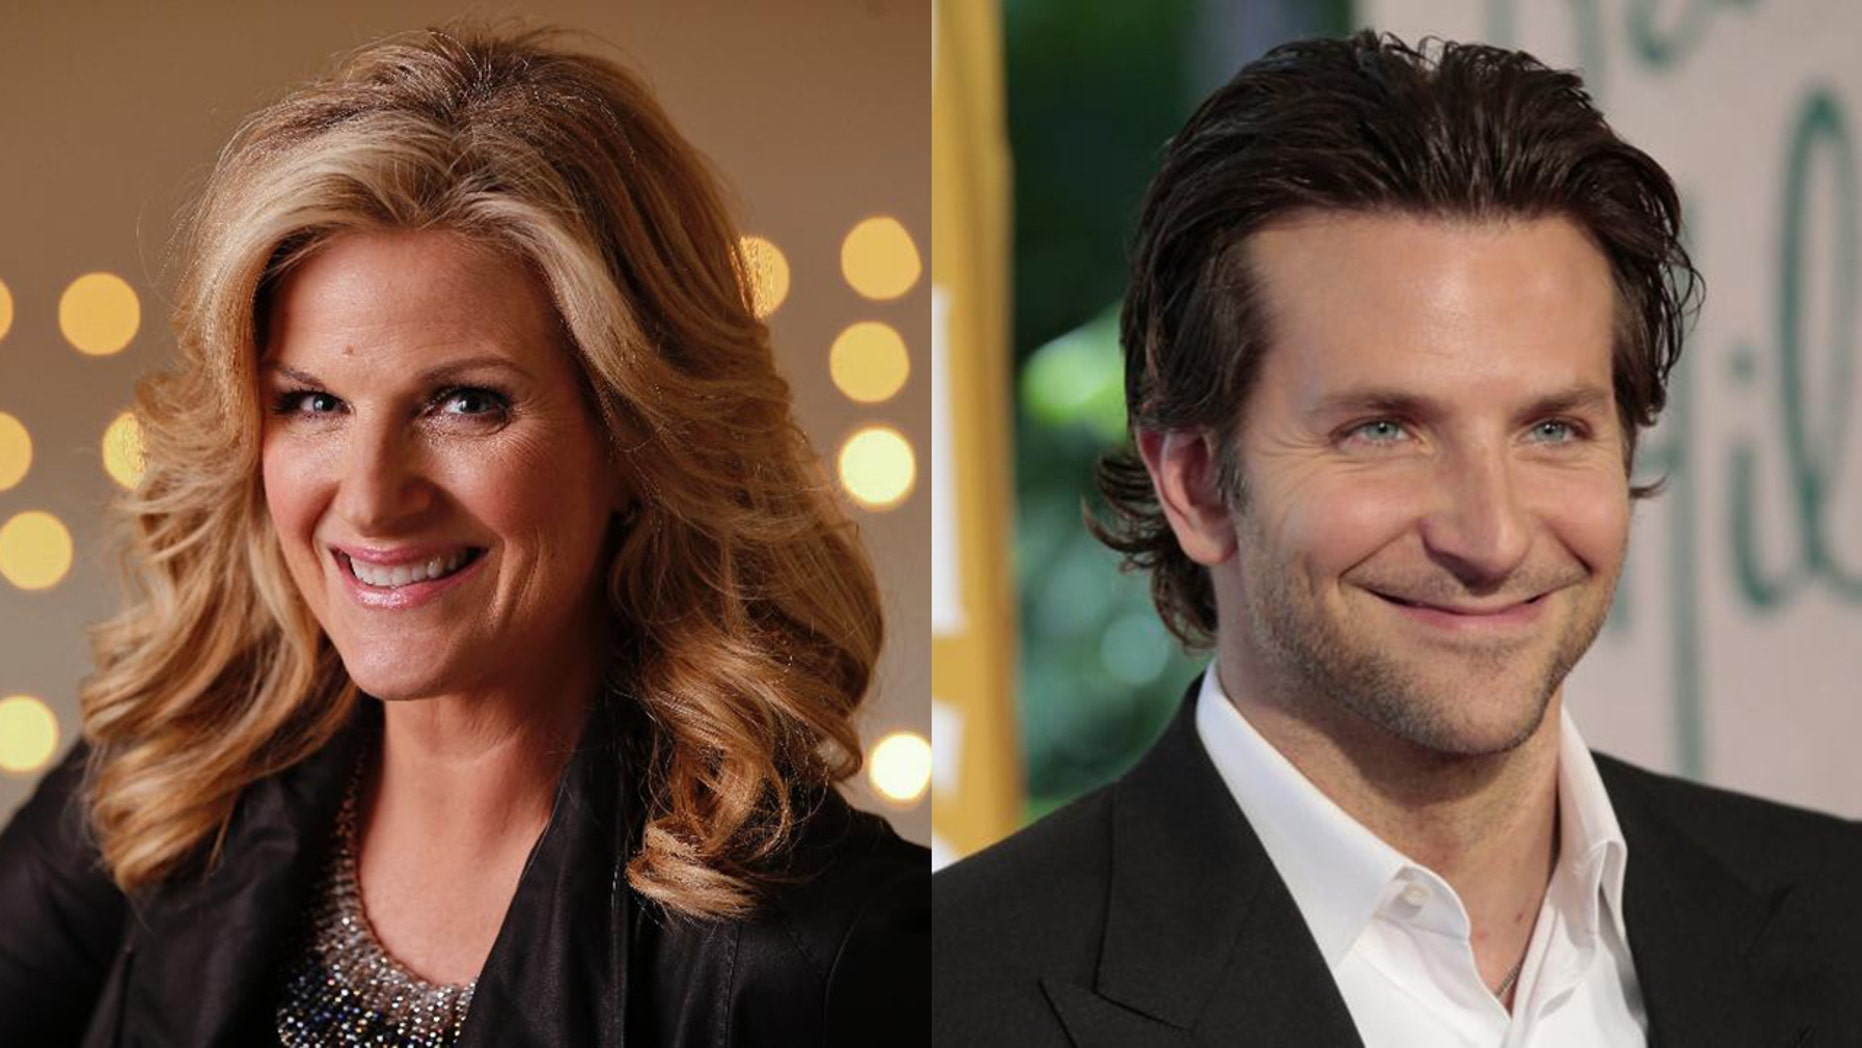 Country star Trisha Yearwood, left, said she was star-struck by actor Bradley Cooper when she met him during her and husband Garth Brooks'